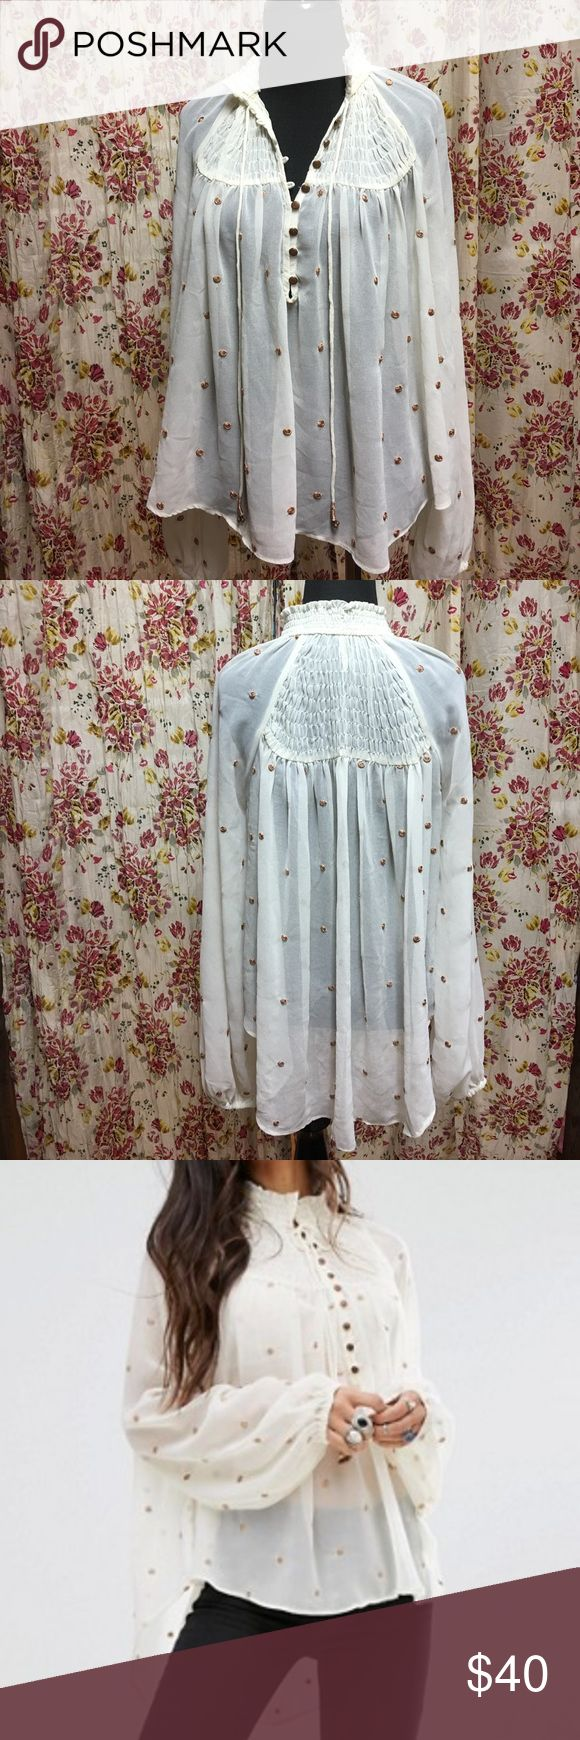 Free People Blouse Free People Ready To Run Smocked Blouse.  Sheer cream material.  Bronze embroidered metallic dots.  Smocked front and back.  Ruffled high neck.  Elastic cuffs.  Tie neck.  High low hem.  Excellent used condition. Free People Tops Blouses